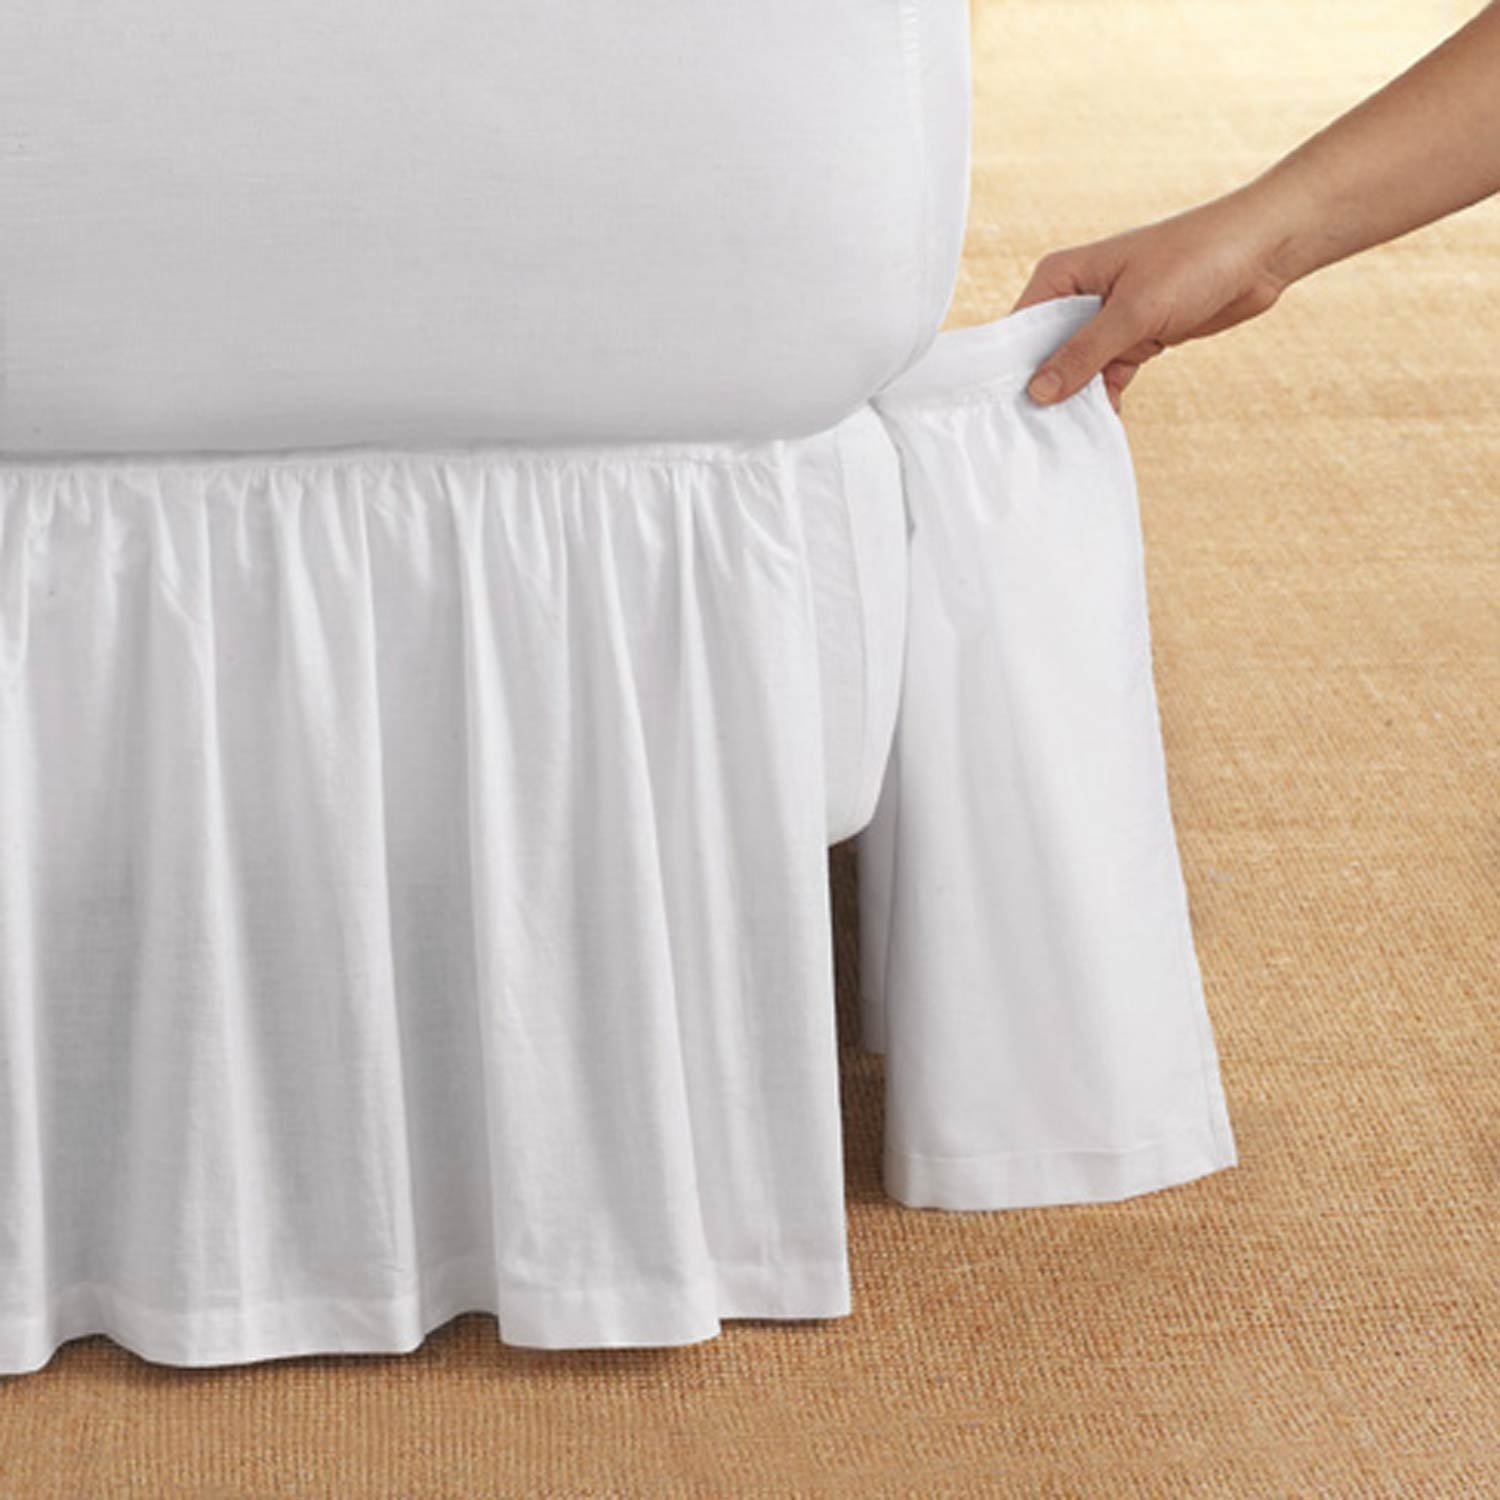 D. Kwitman & Son Cotton Gathered Detachable 18'' Drop Bed Skirt, Queen, White by D. Kwitman & Son